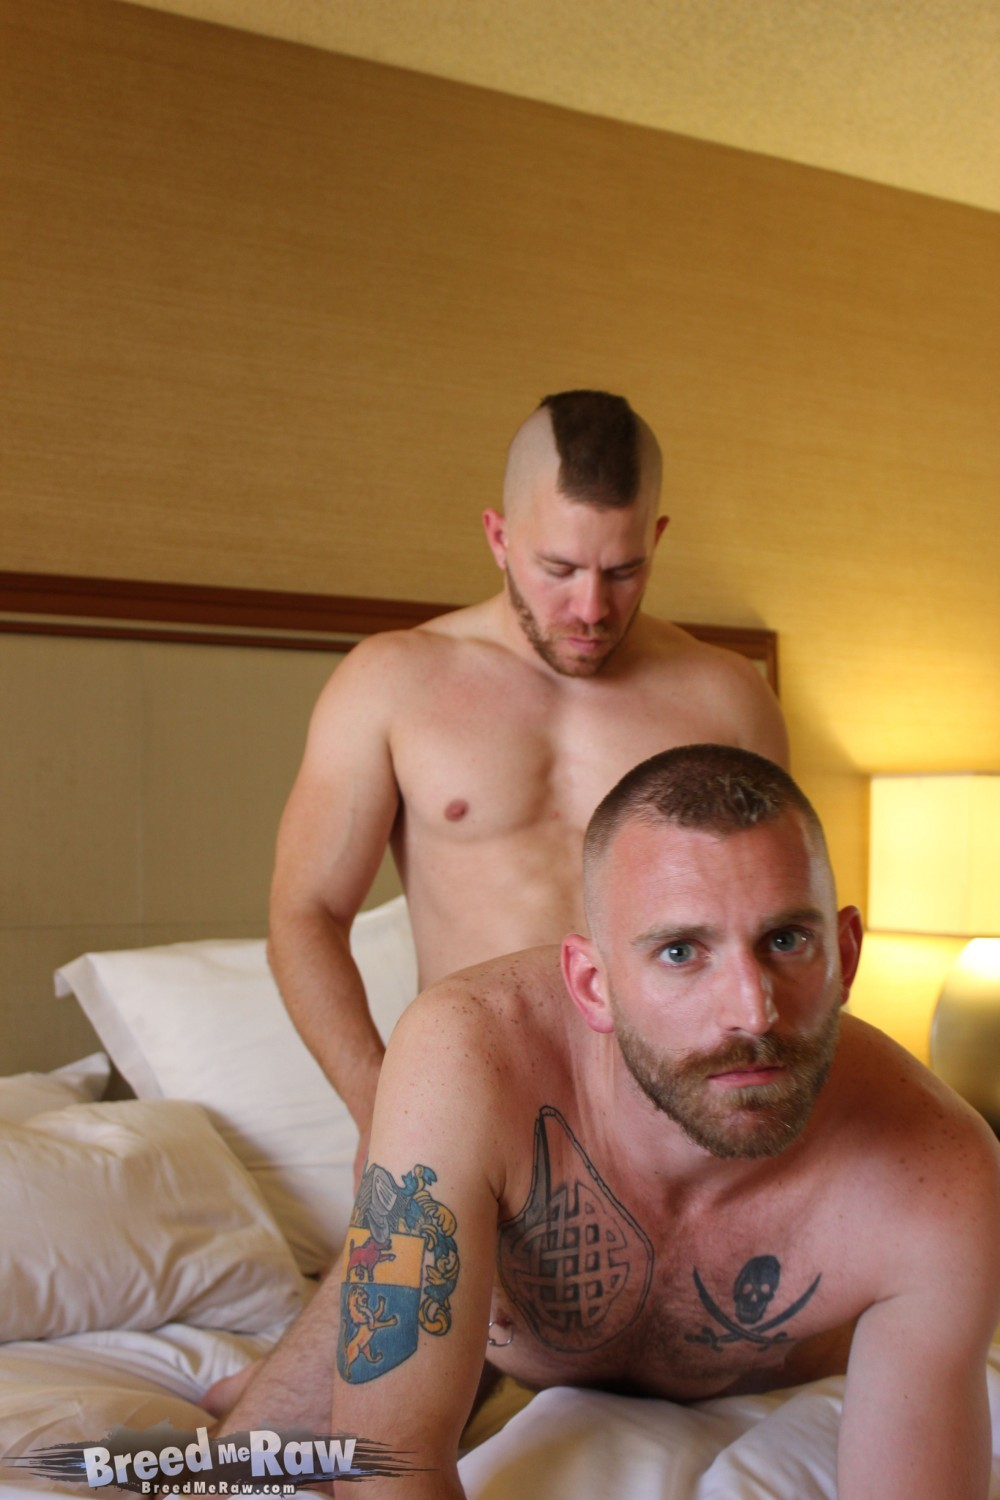 Breed-Me-Raw-Butch-Bloom-and-James-Roscoe-Bareback-Fucking-BBBH-Big-Cock-11 Hairy Hot Amateur Hole Gets Barebacked By A Masculine Hung Cock